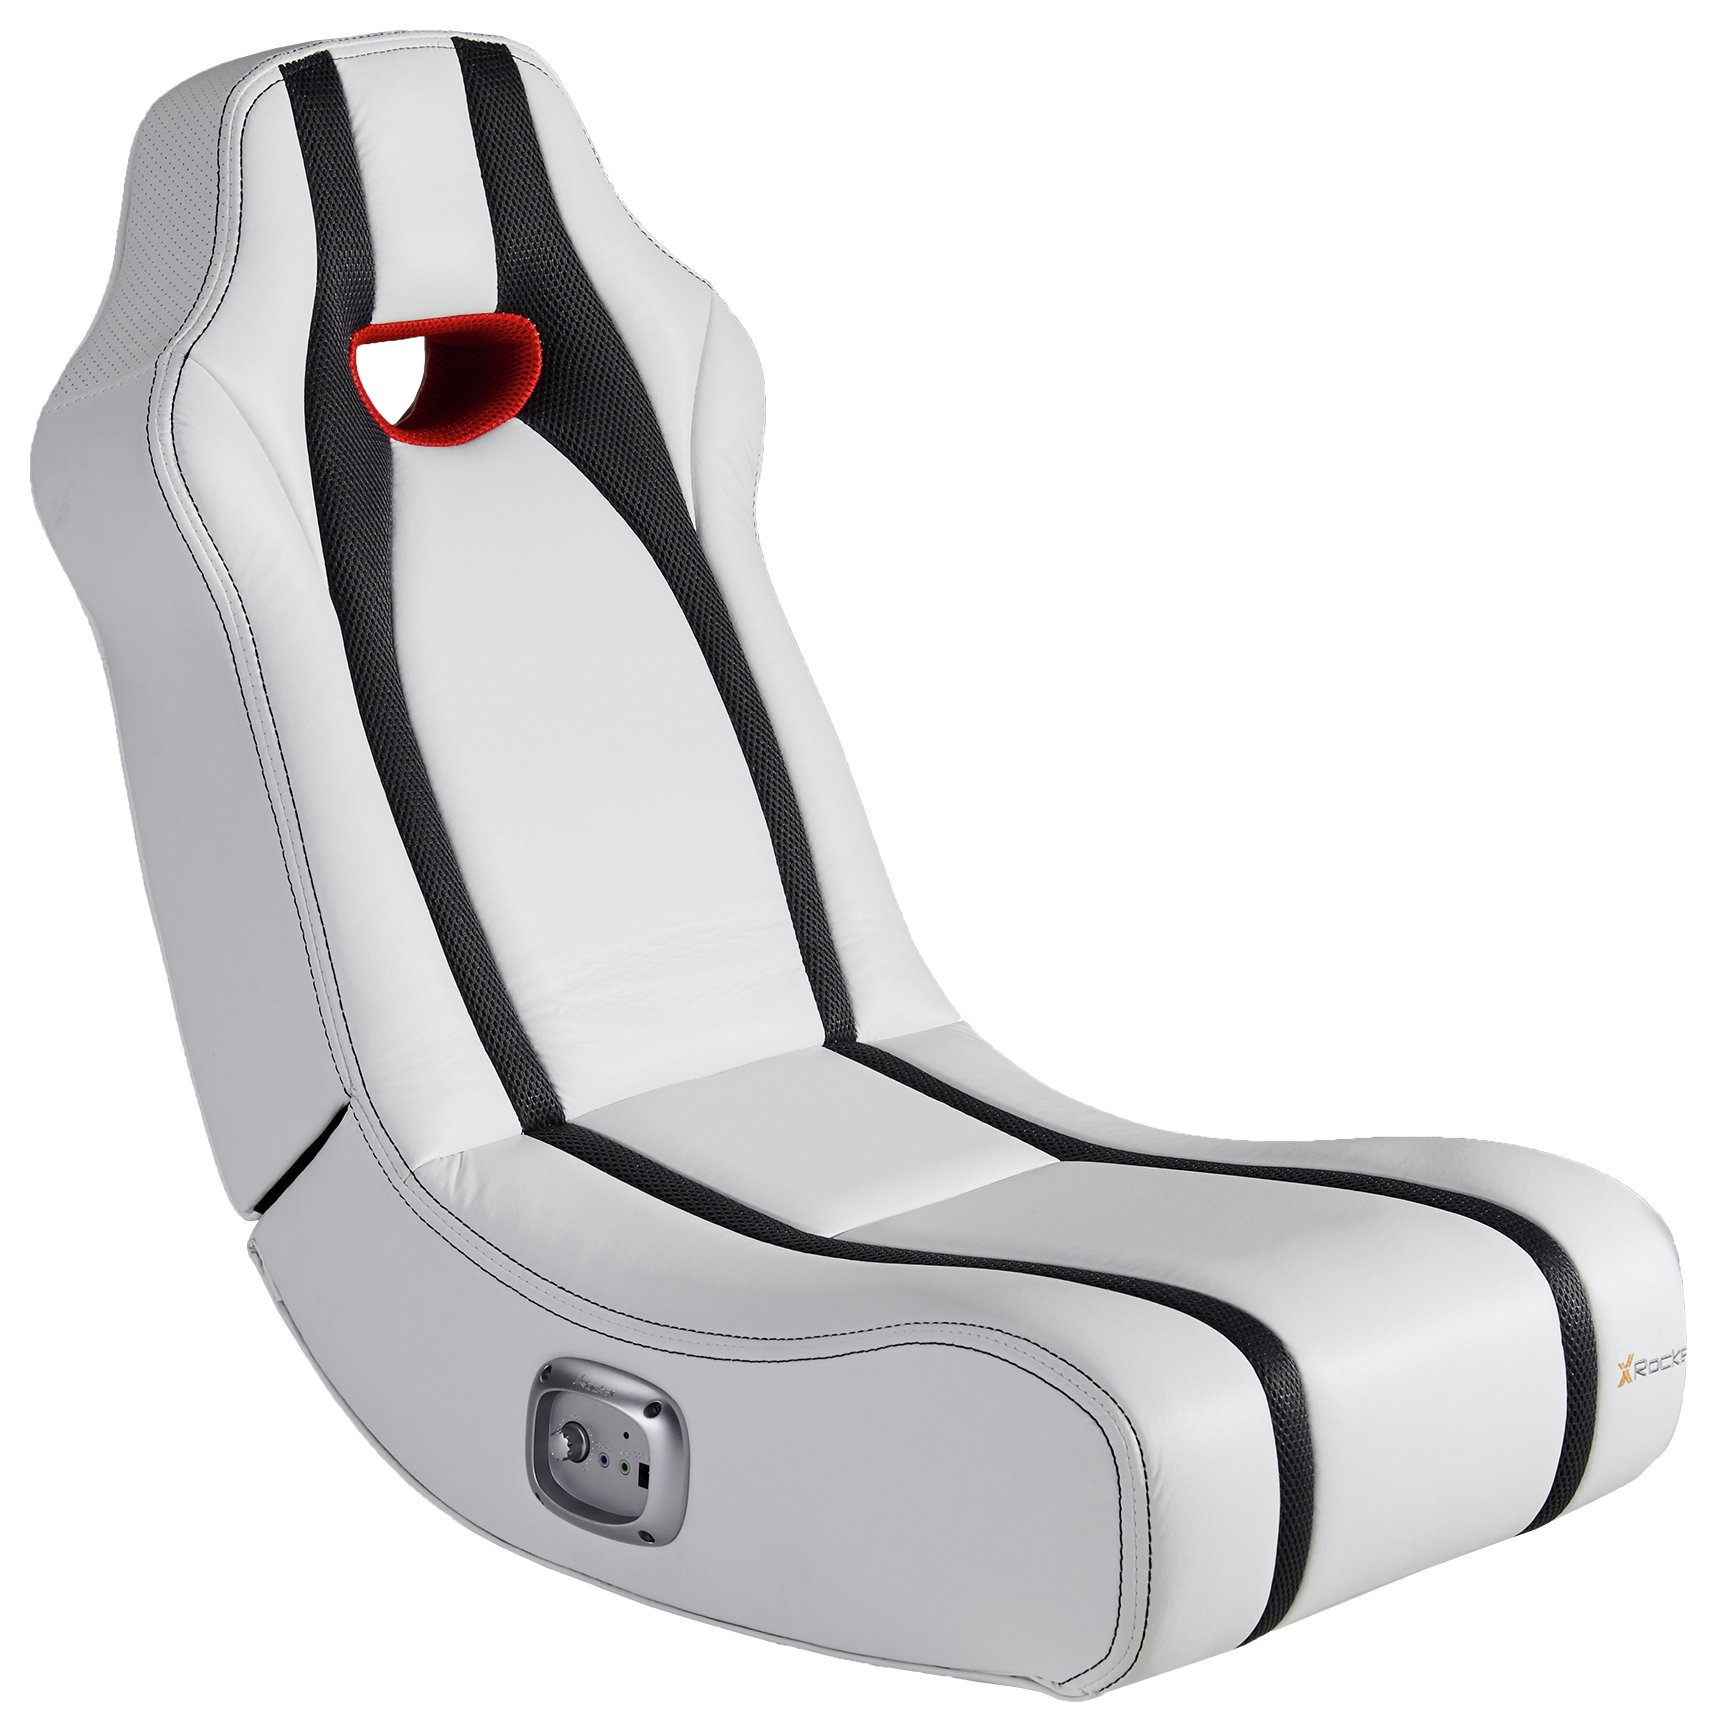 X Rocker Spectre White Gaming Chair Ps4 Xbox One